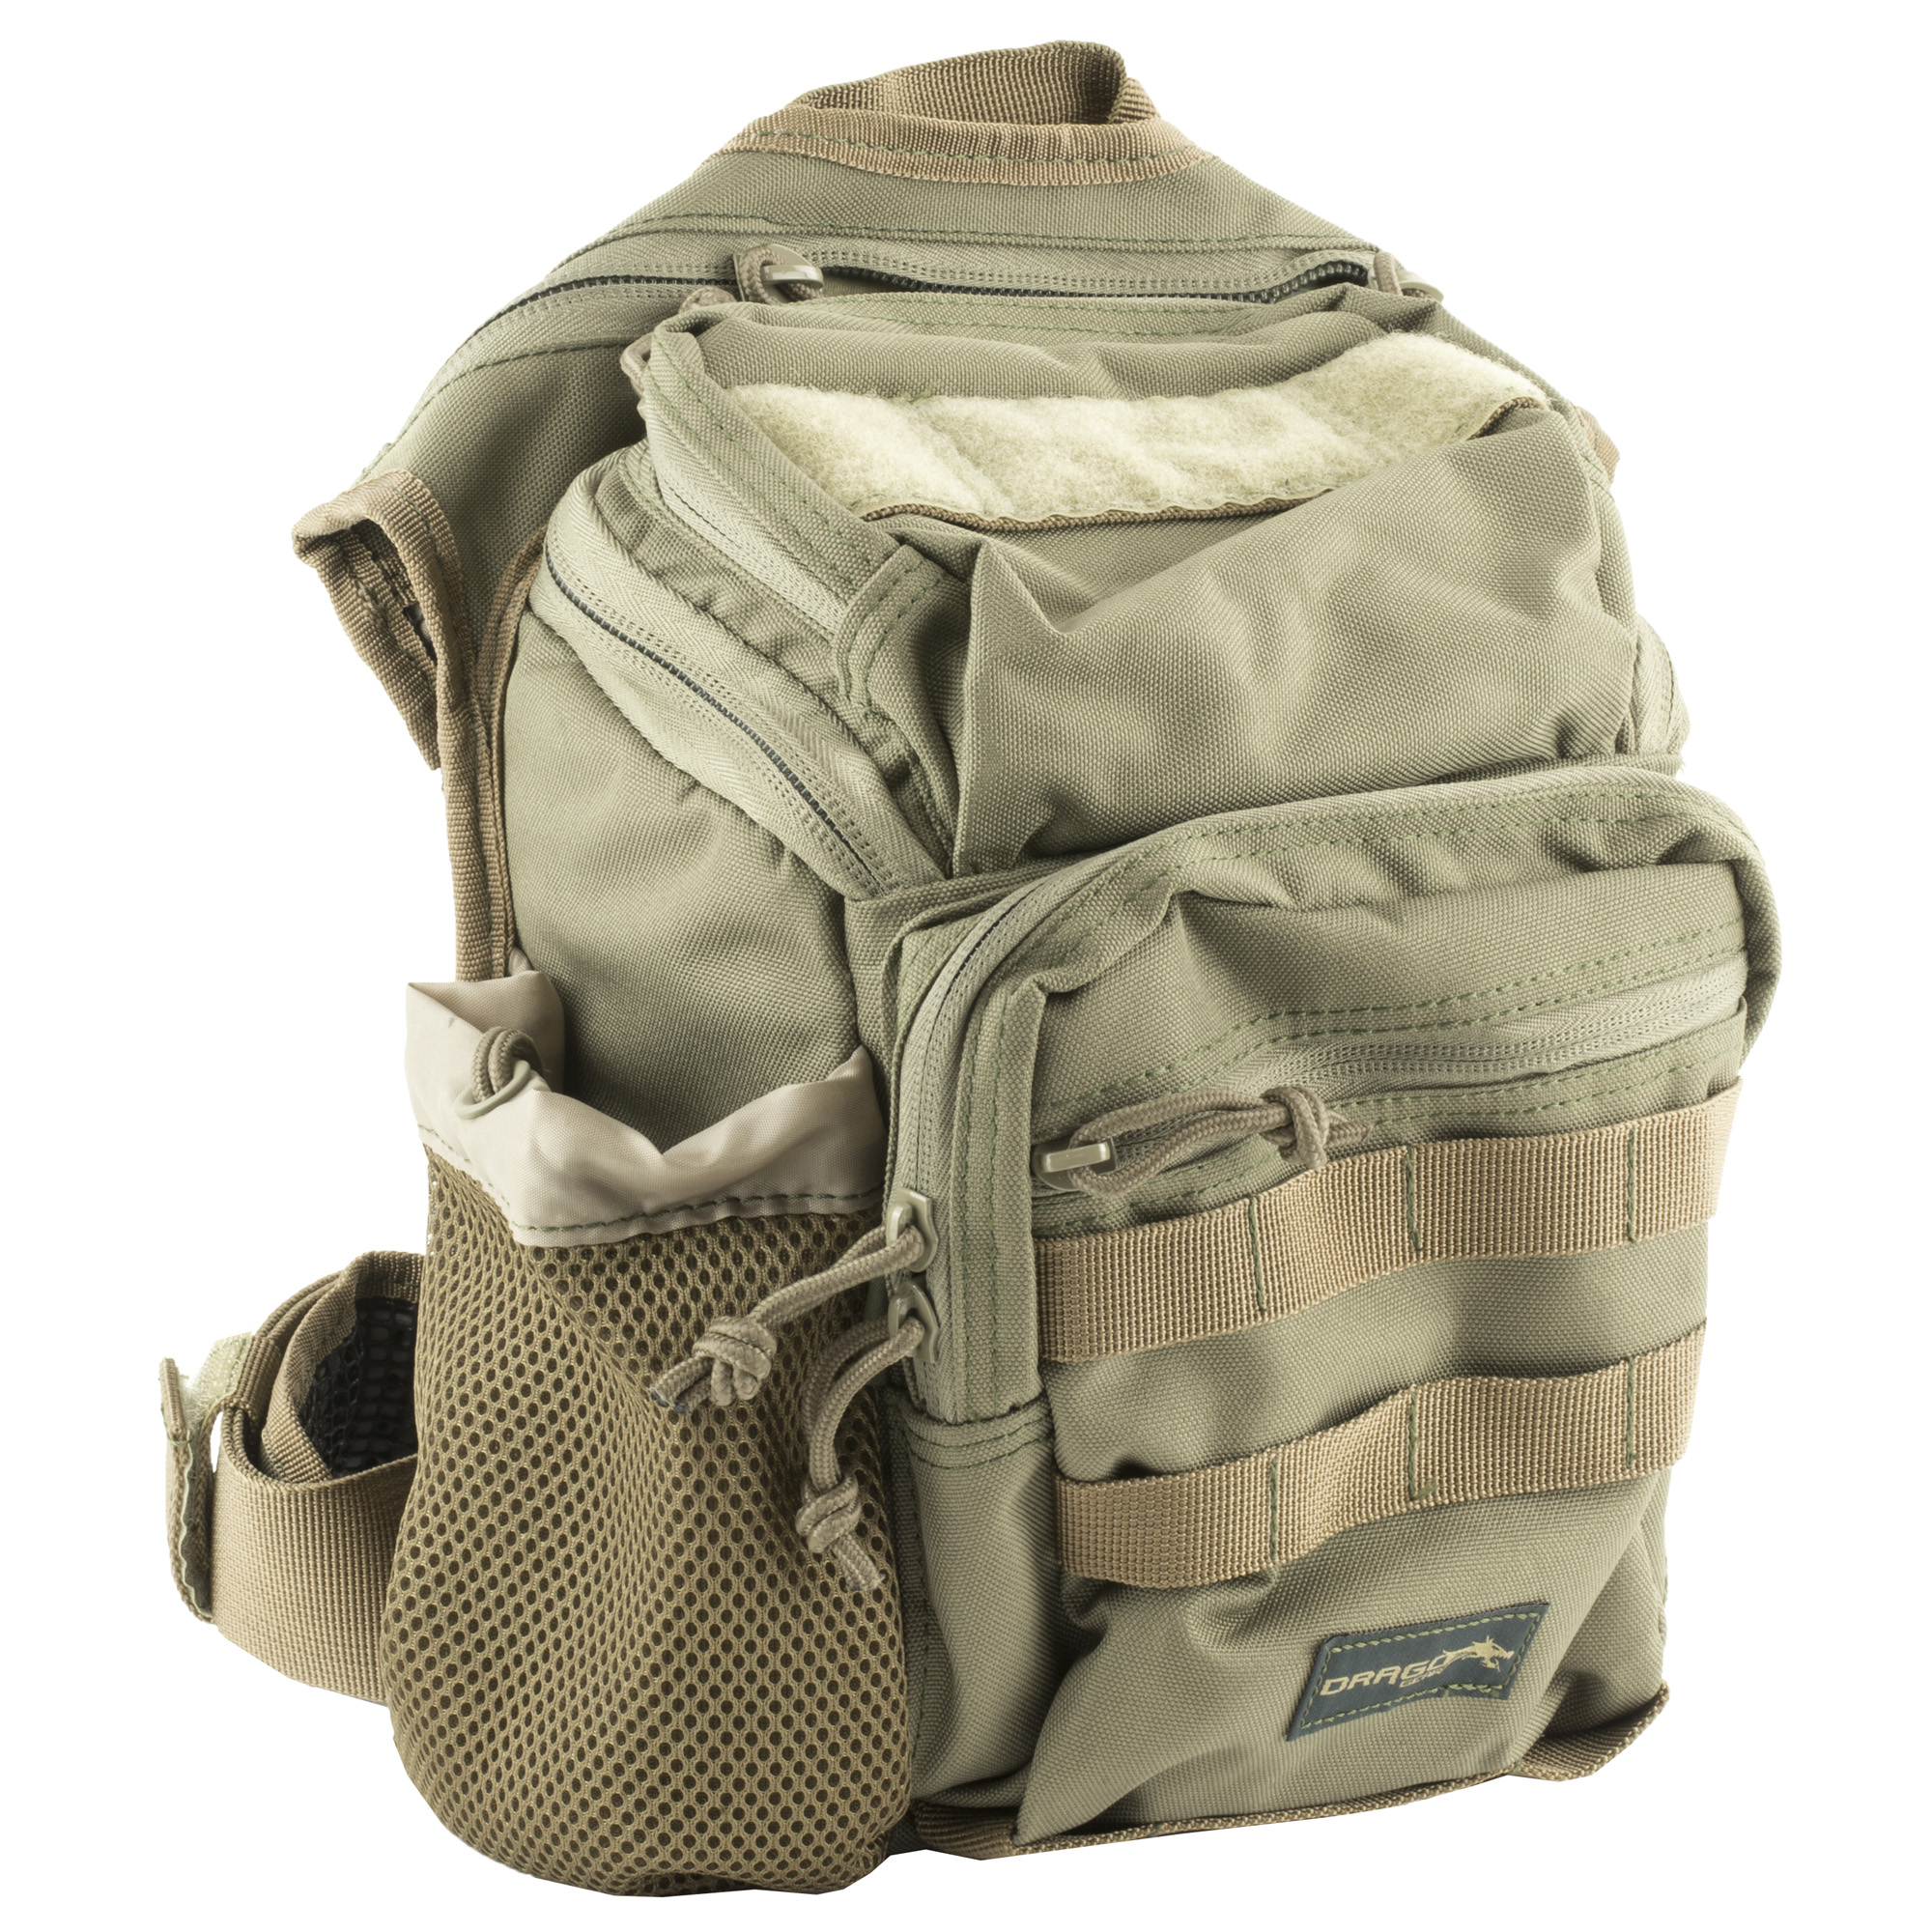 Drago side packs offer a level of versatility and maneuverability that is simply not possible when using other tactical equipment.